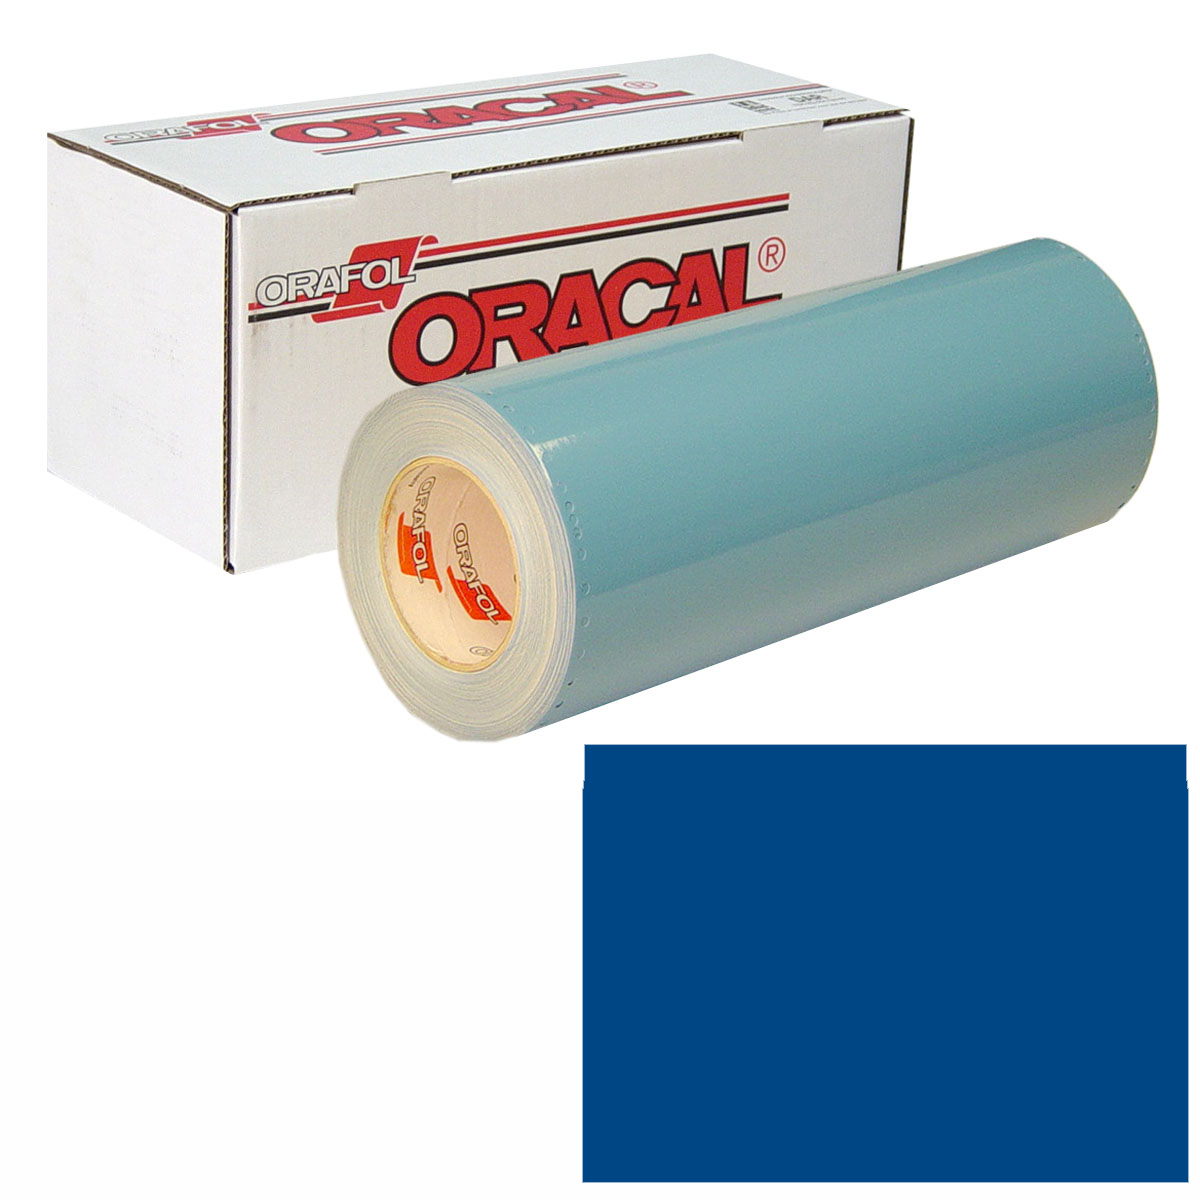 ORACAL 751 15in X 10yd 067 Blue